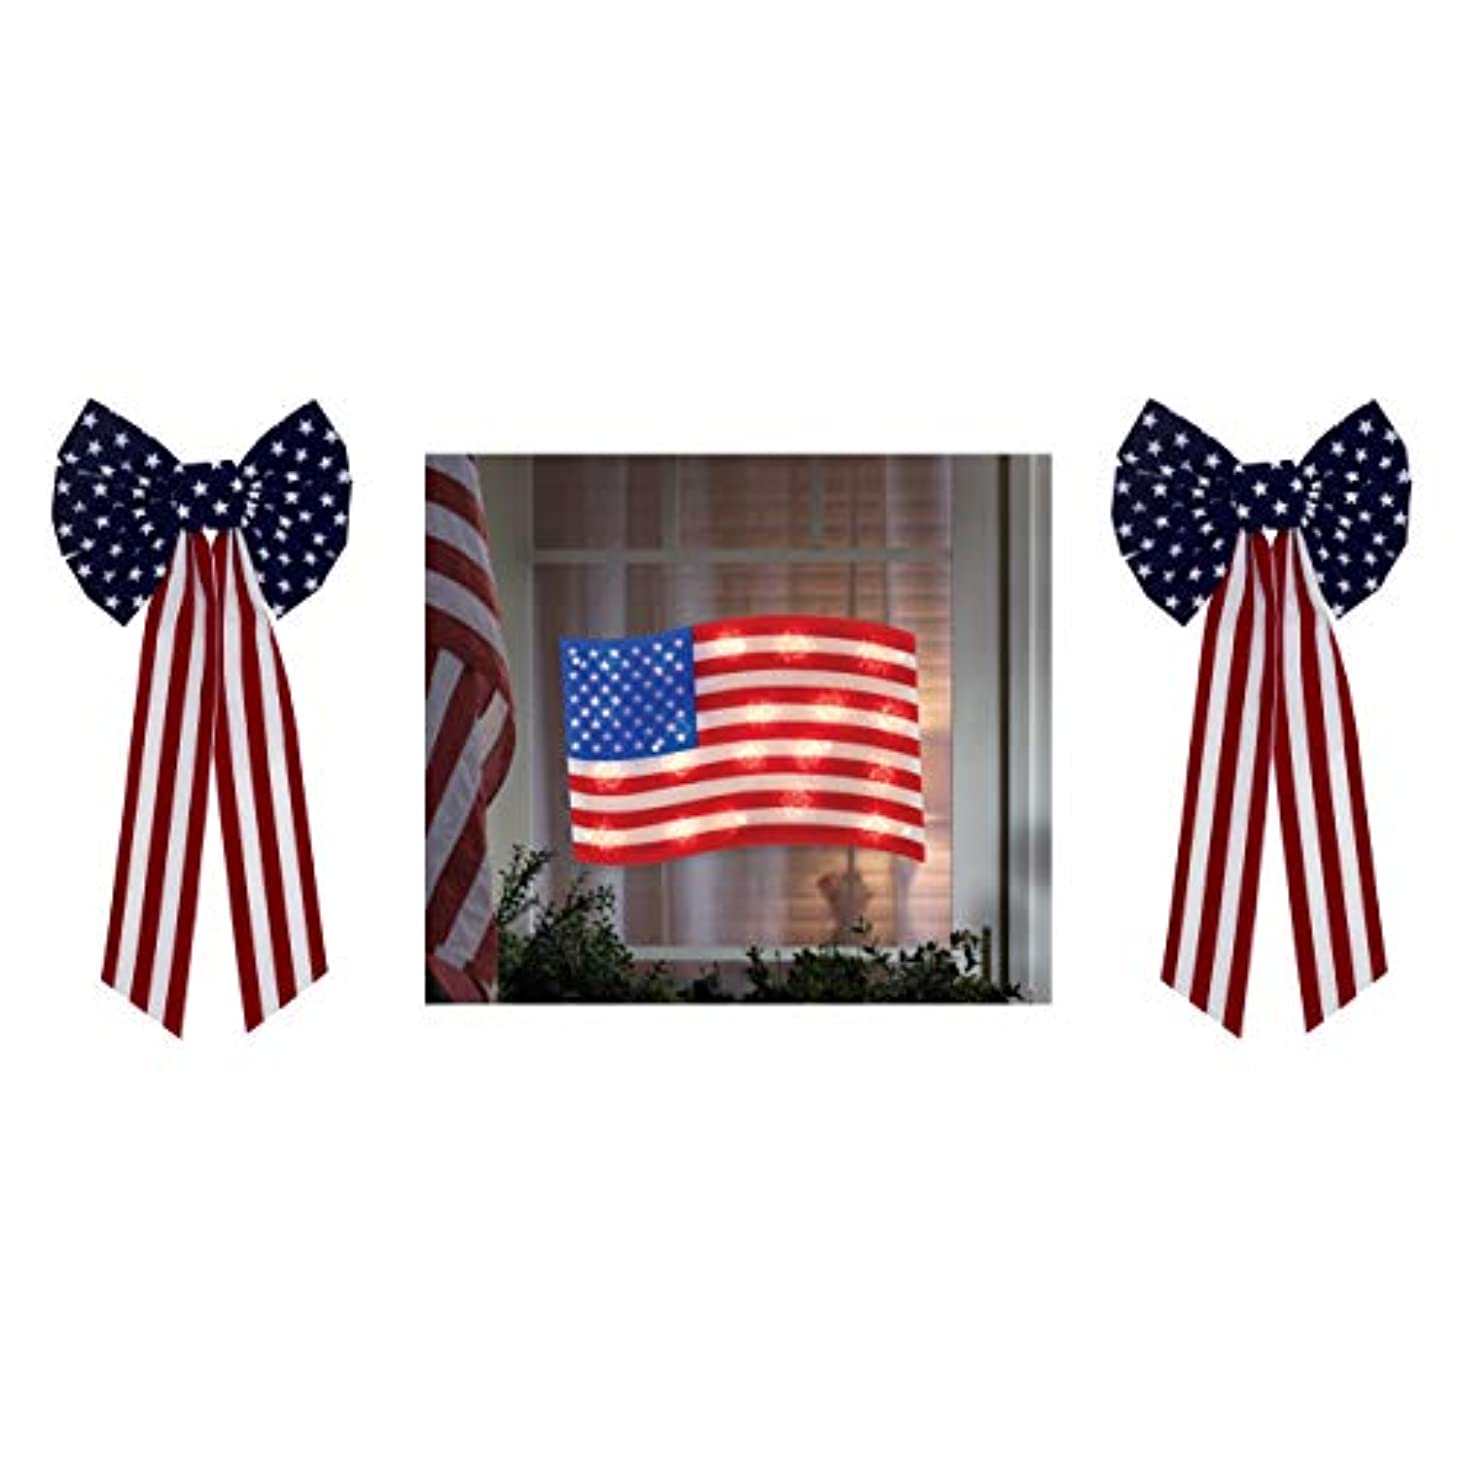 B-THERE Bundle of USA July 4 Decorations, American Flag 50 Lights & 2 Bows, Flock Medium 6 Loop & Center Button